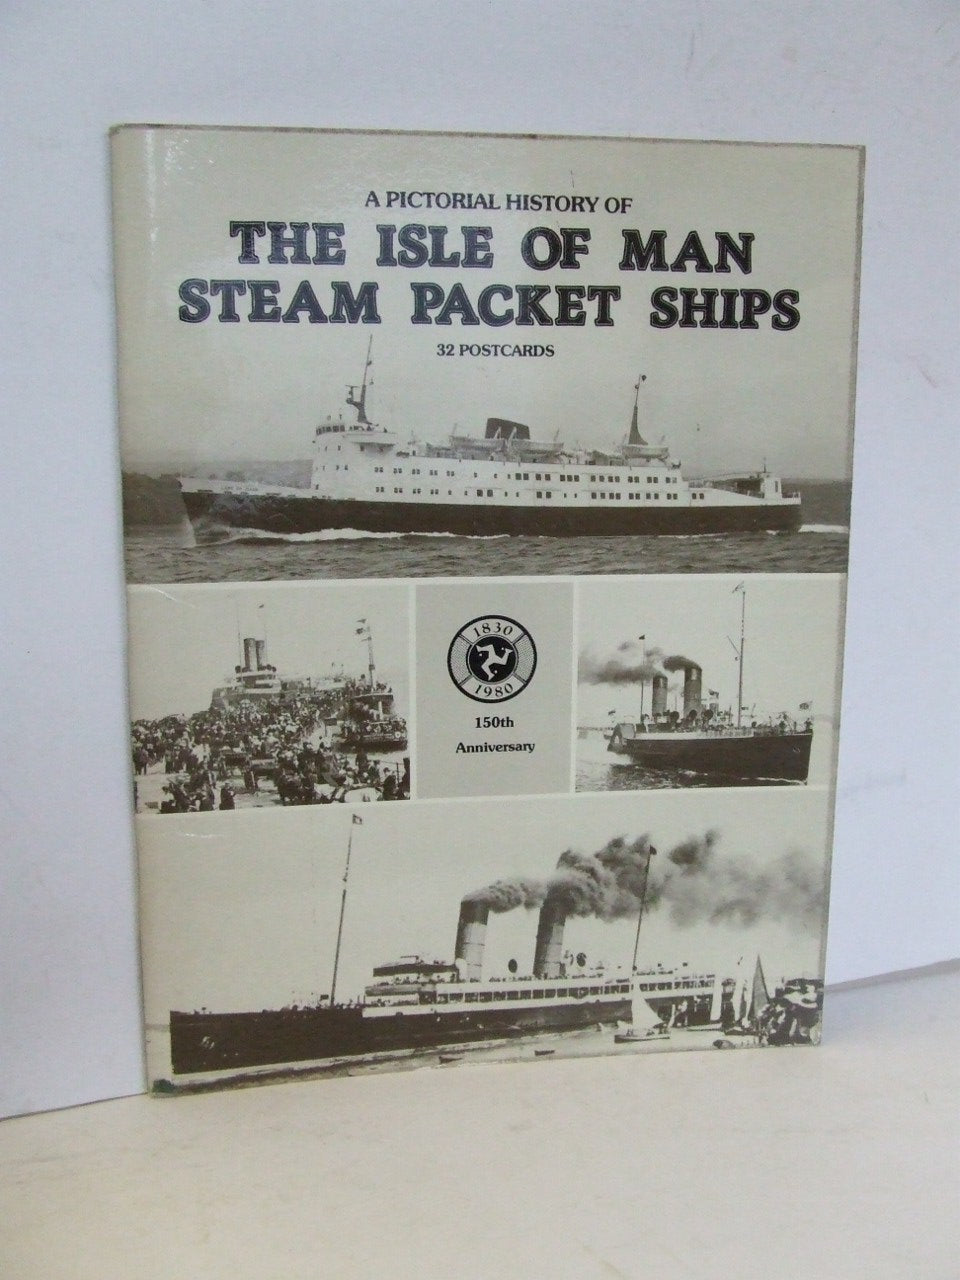 A Pictorial History of the Isle of Man Steam Packet Ships